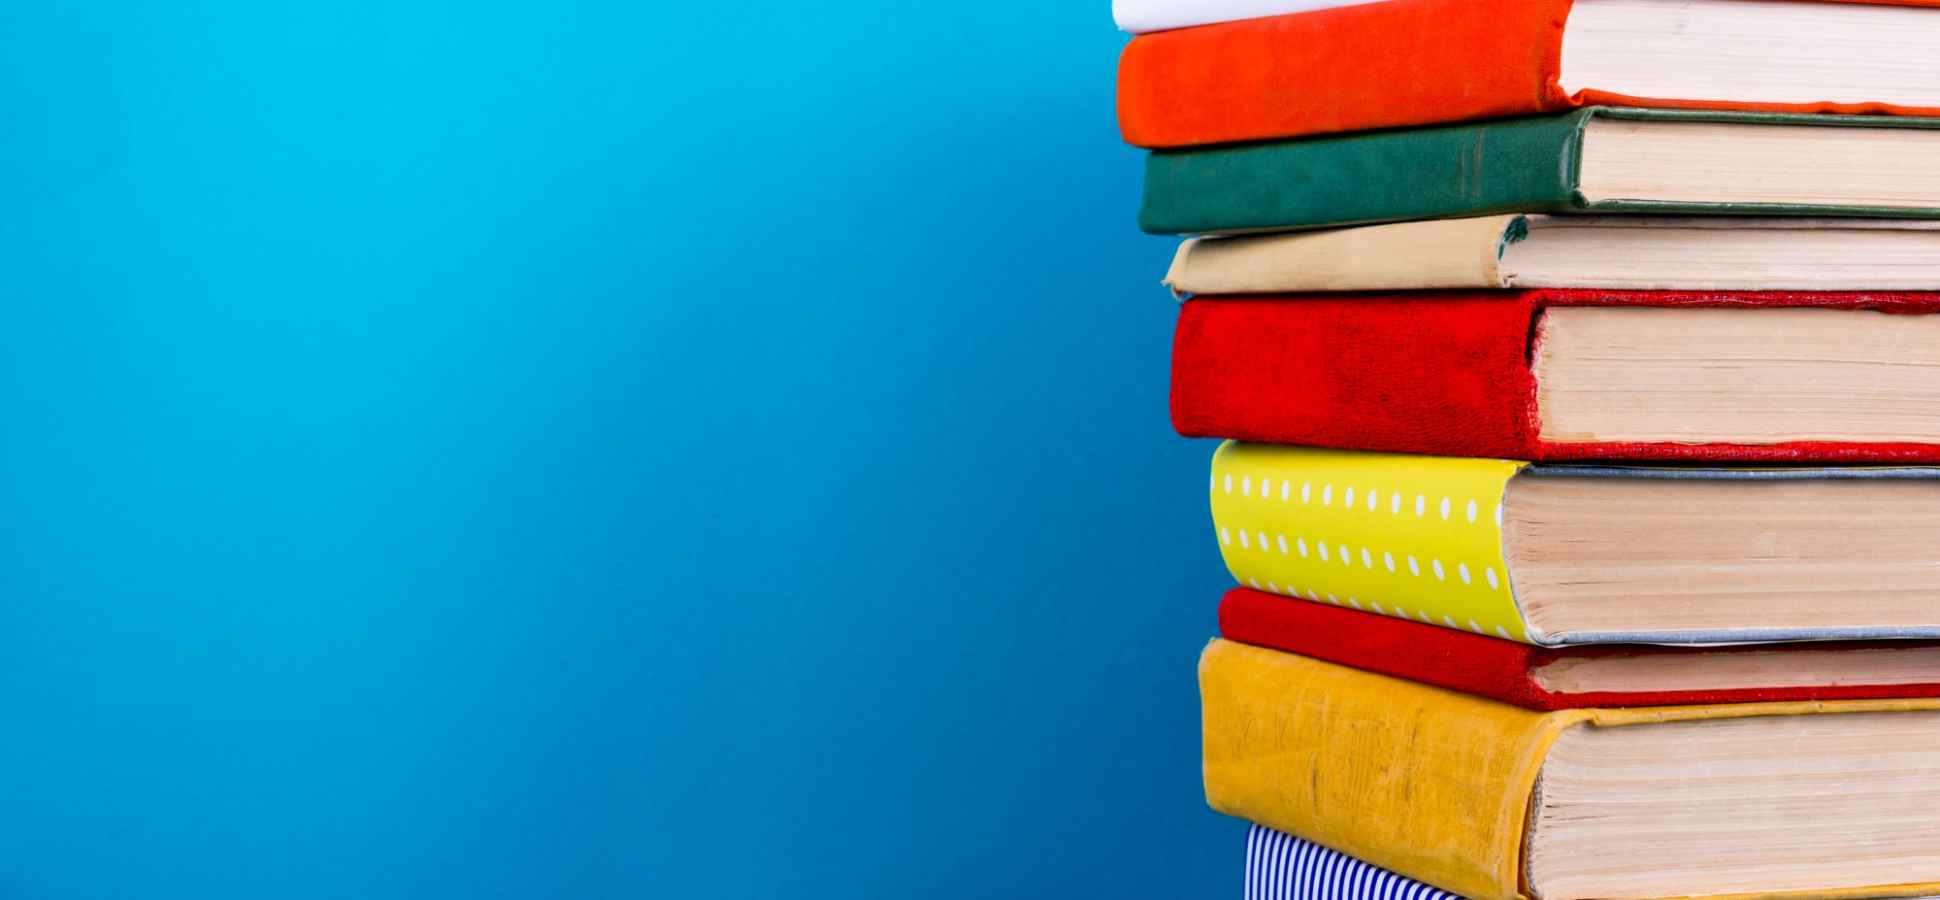 44 Favorite Books of High Achievers